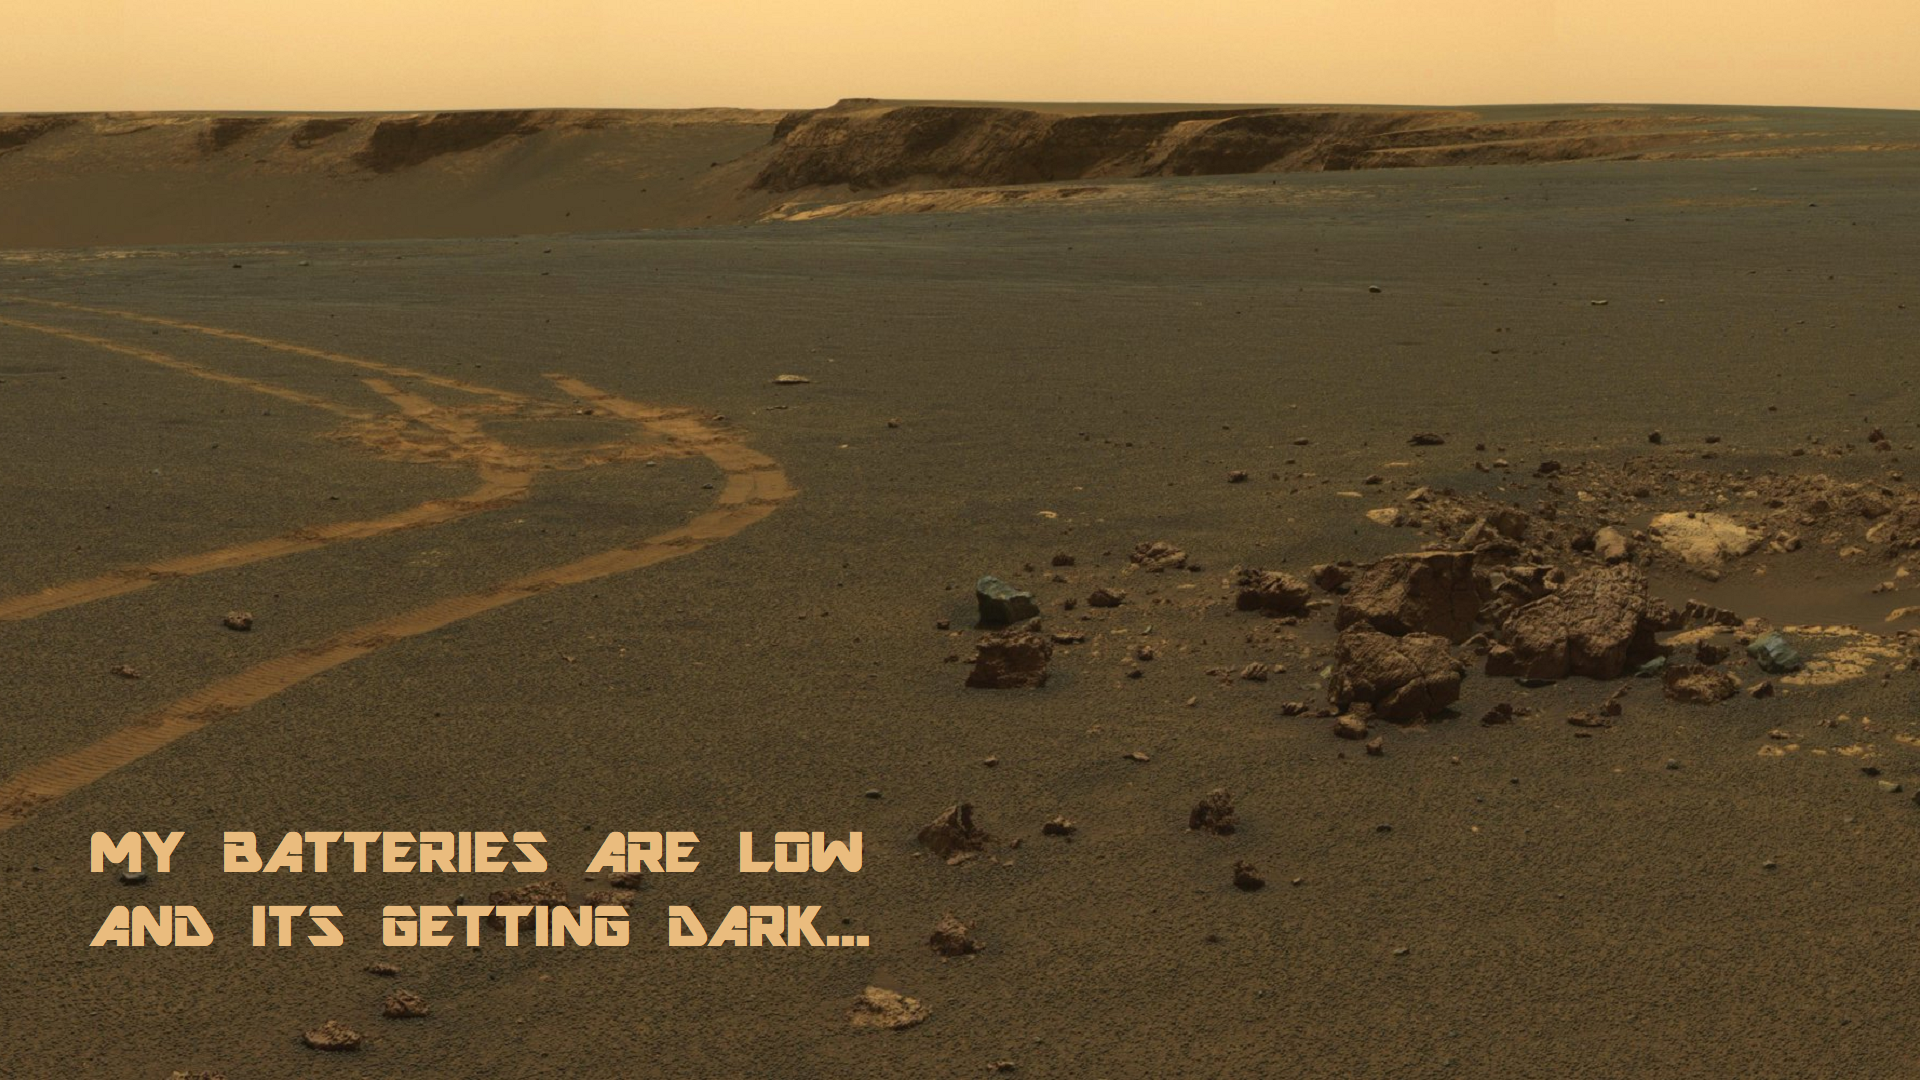 The last words Opportunity sent wallpapers 1920x1080